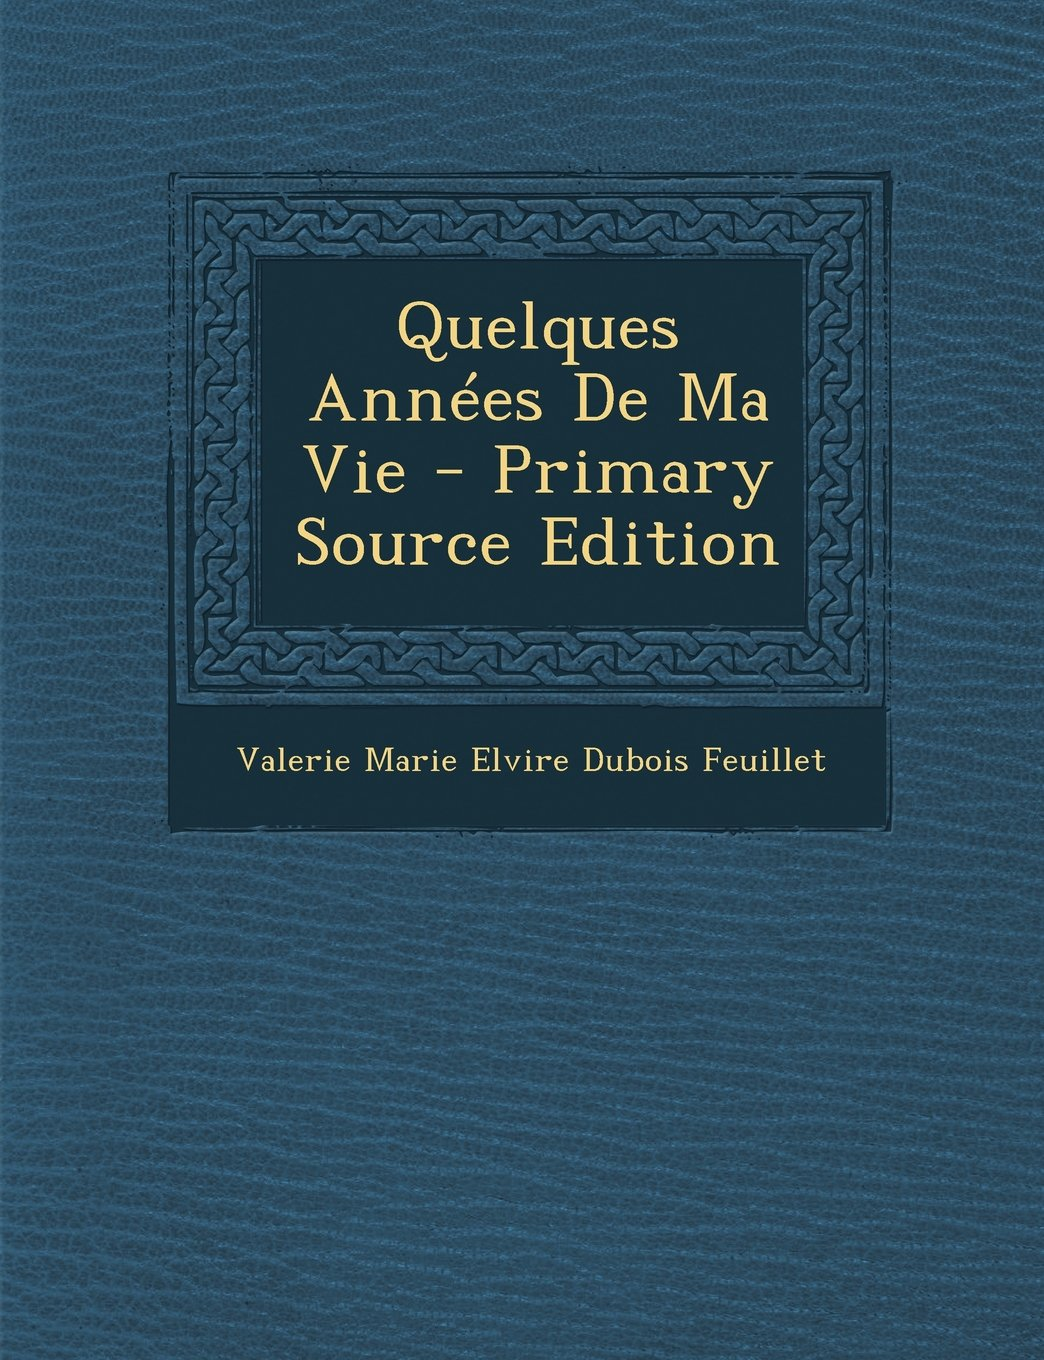 Quelques Annees de Ma Vie - Primary Source Edition (French Edition) ebook